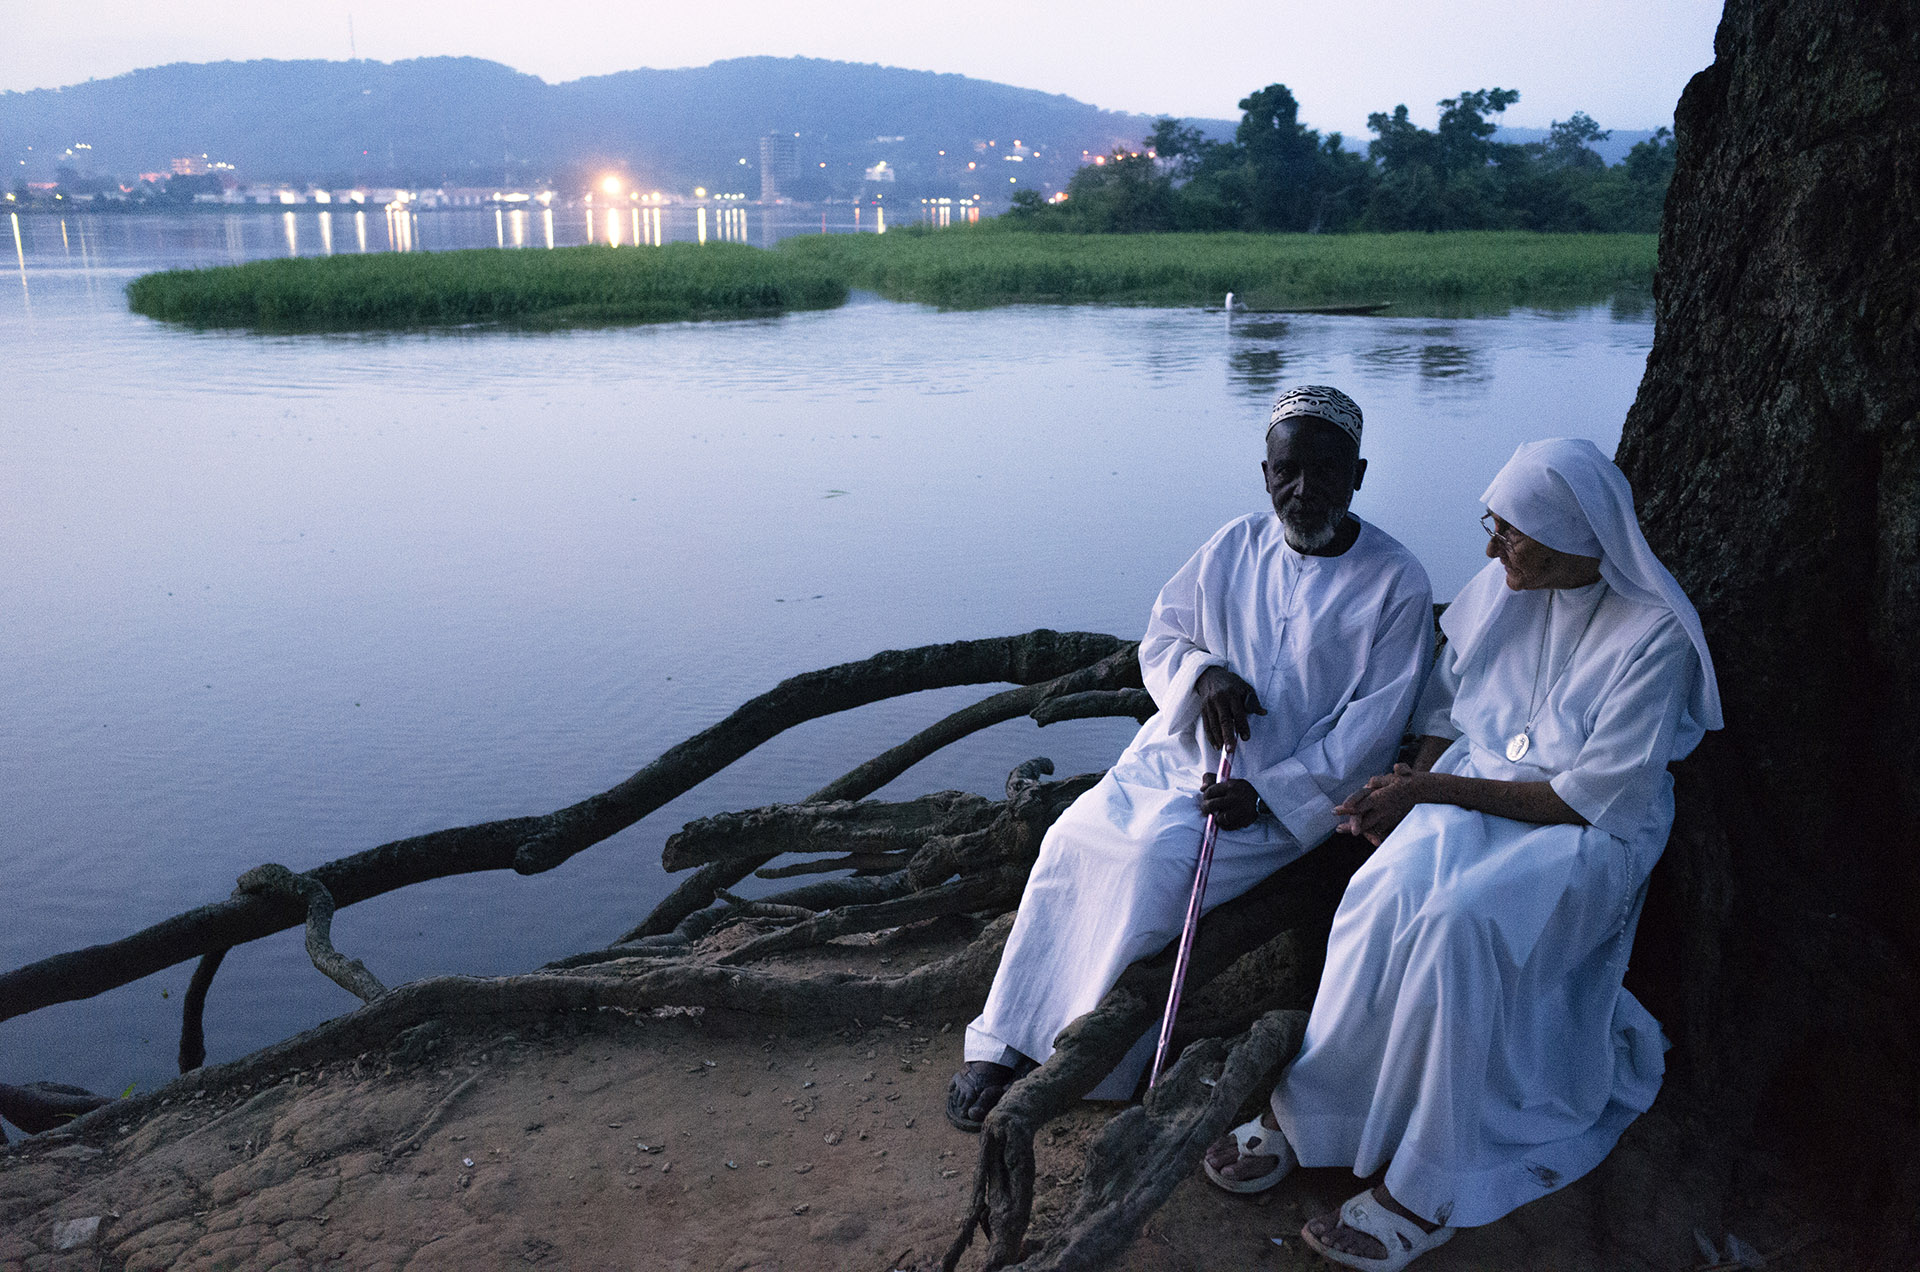 Sister Maria Concetta and Imam Moussa Bawa